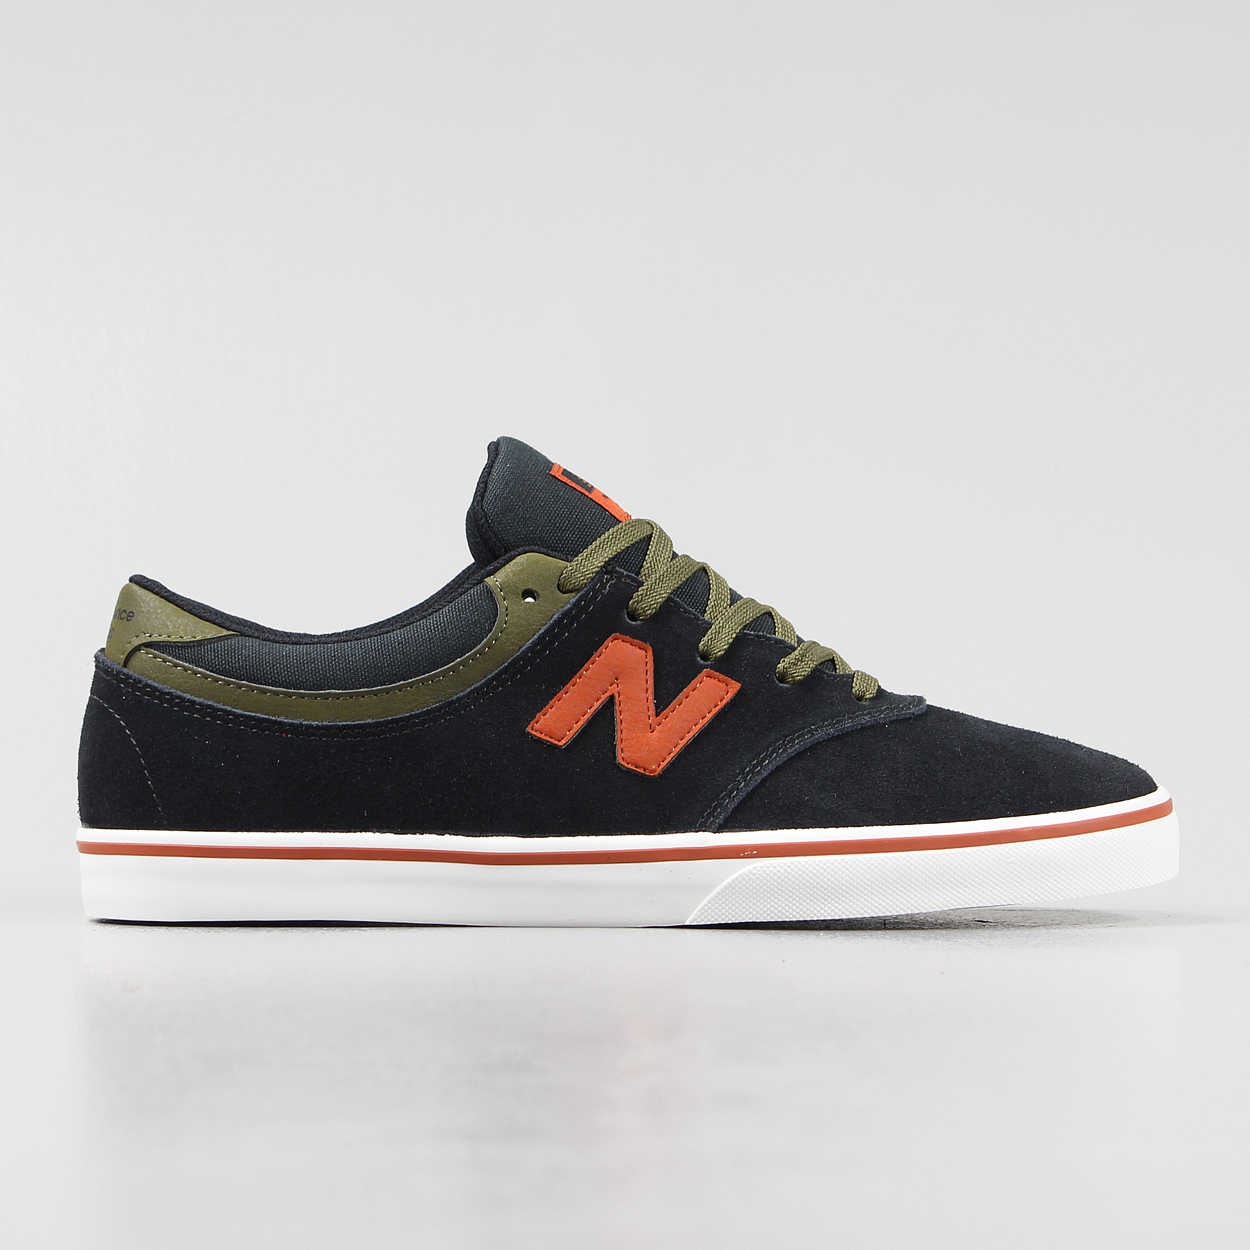 9d97322d37879 New Balance Numeric Mens Quincy 254 Shoes Black Red Trainers £38.50